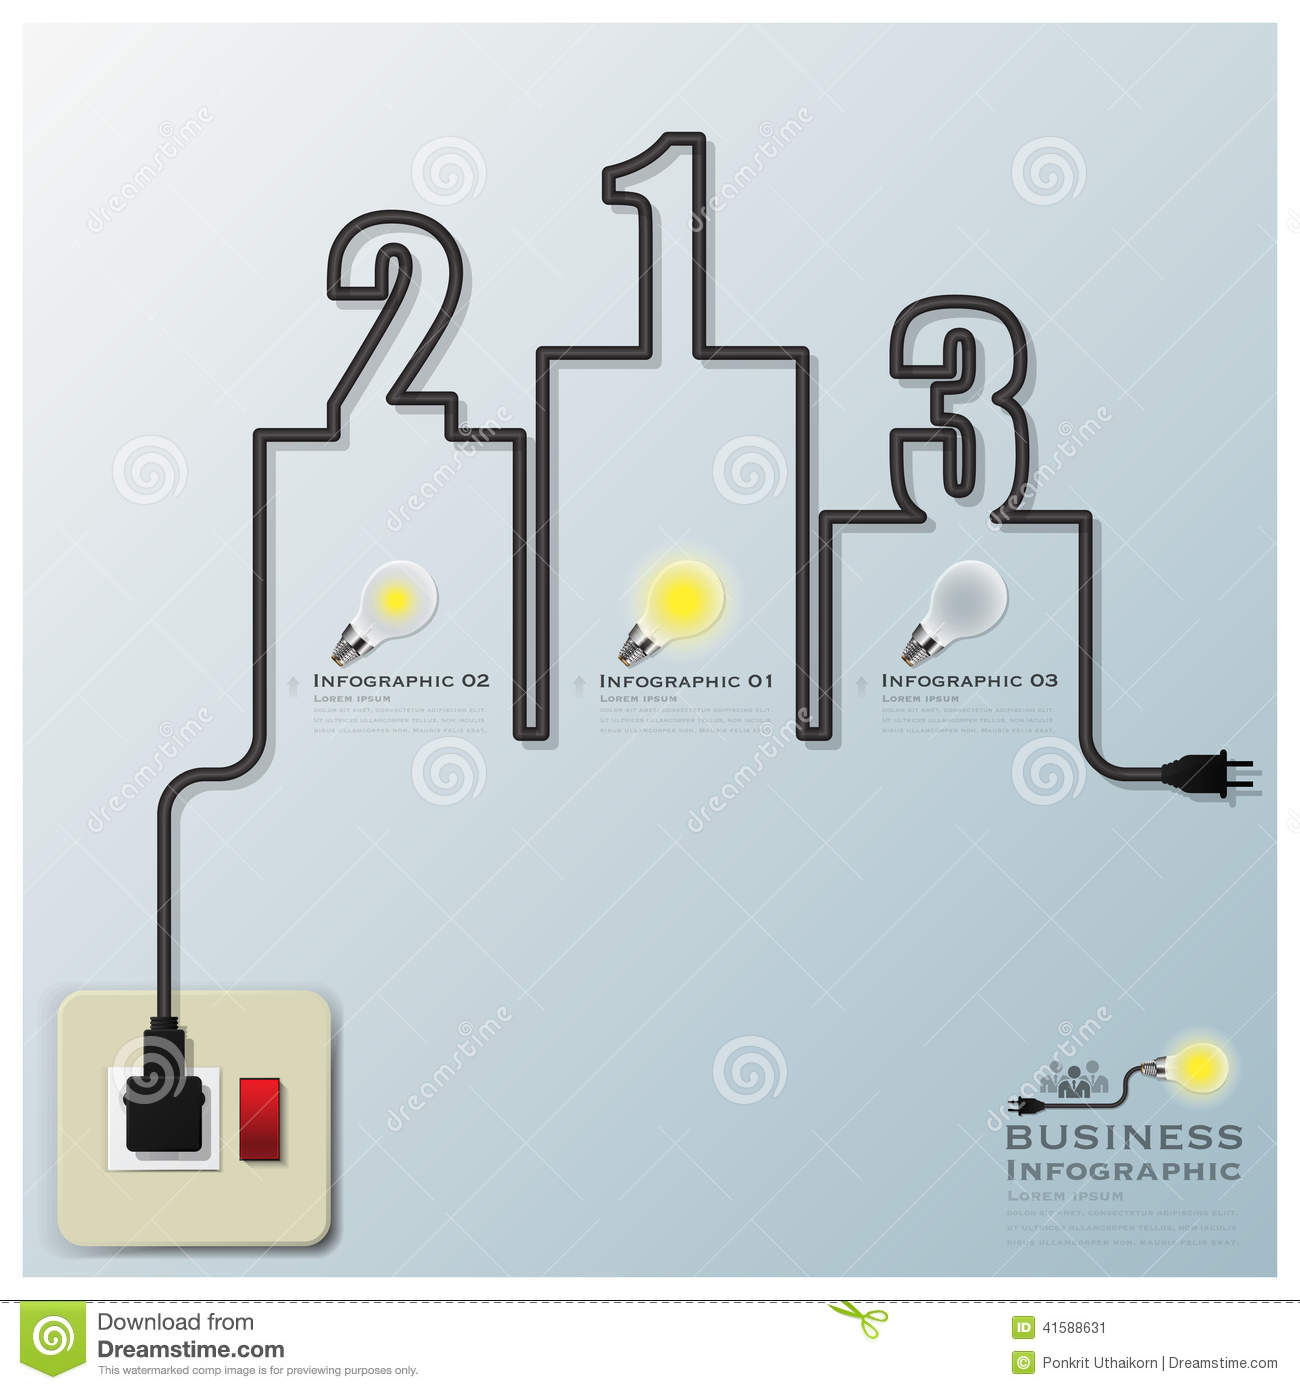 Index as well Stock Illustration Podium Electric Wire Line Business Infographic Design Template Image41588631 furthermore Earthing And Electrical Grounding Types Of Earthing also Wiring Circuit Ring in addition Access Control System. on electric cable diagram